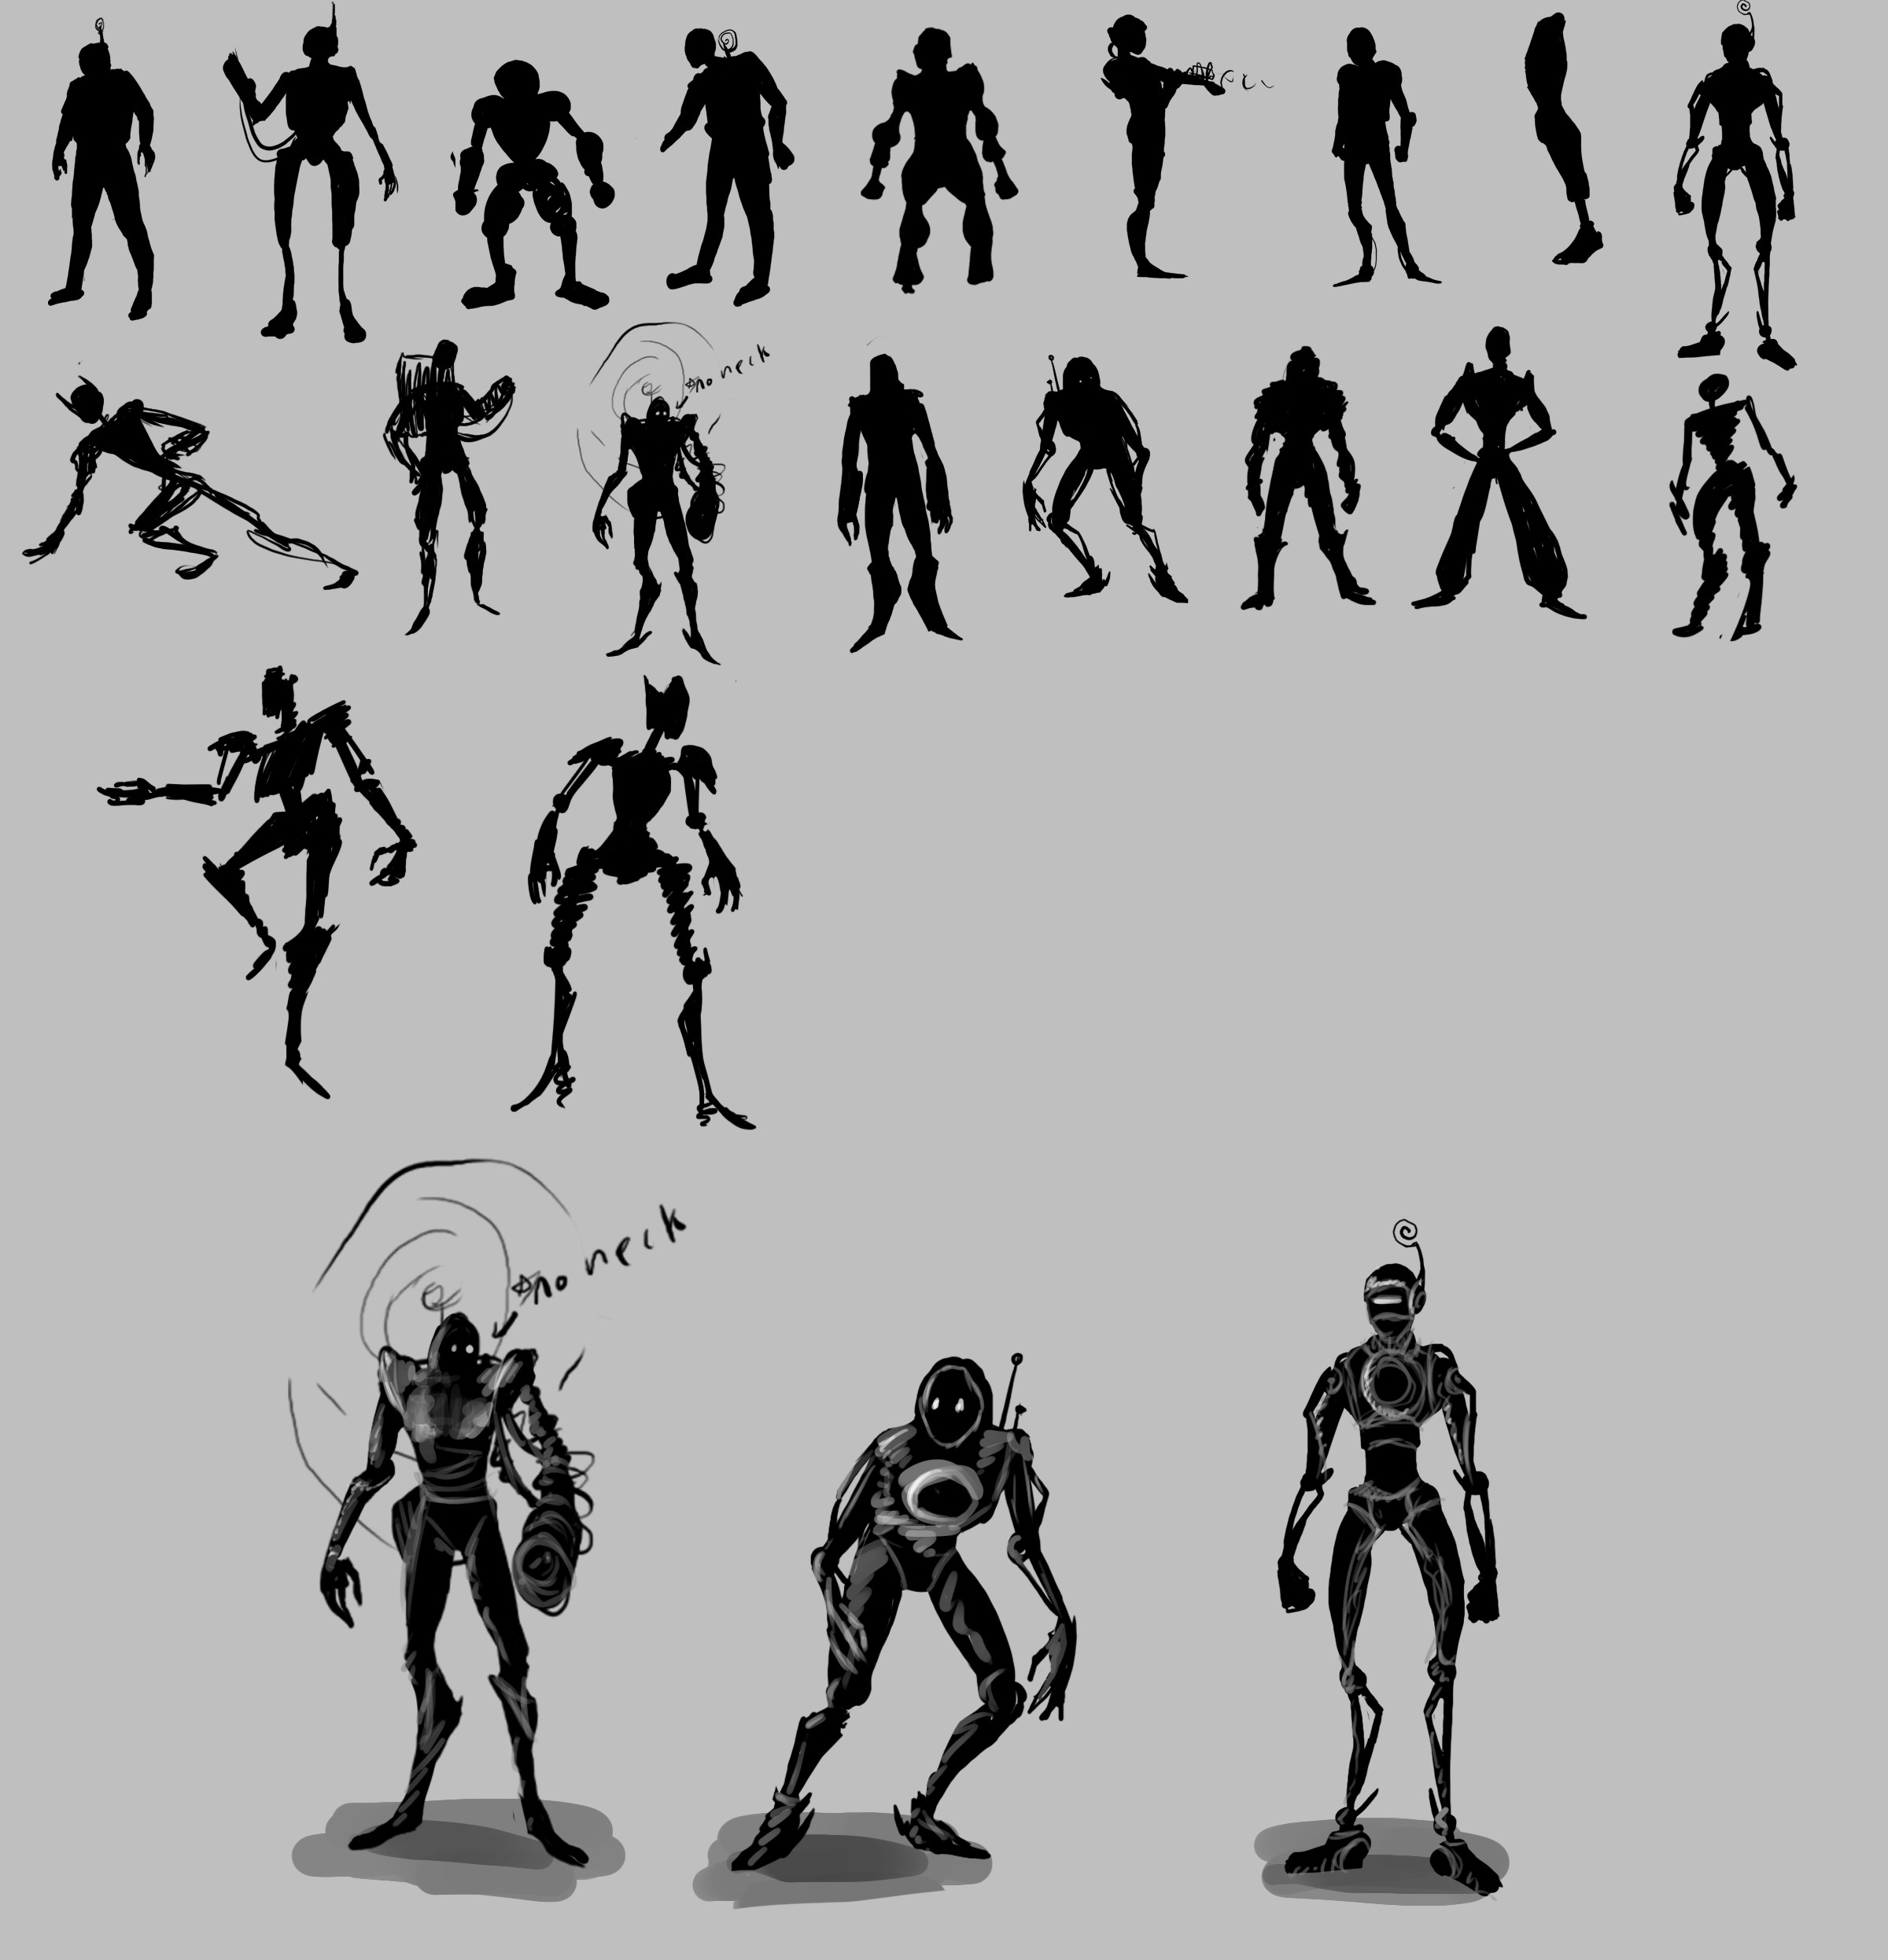 Silhouettes for the Actor. I decided to go for a more robotic look. The actor can't directly fight the Curruption so must rely on stealth and cooperation with the director to complete their objective.